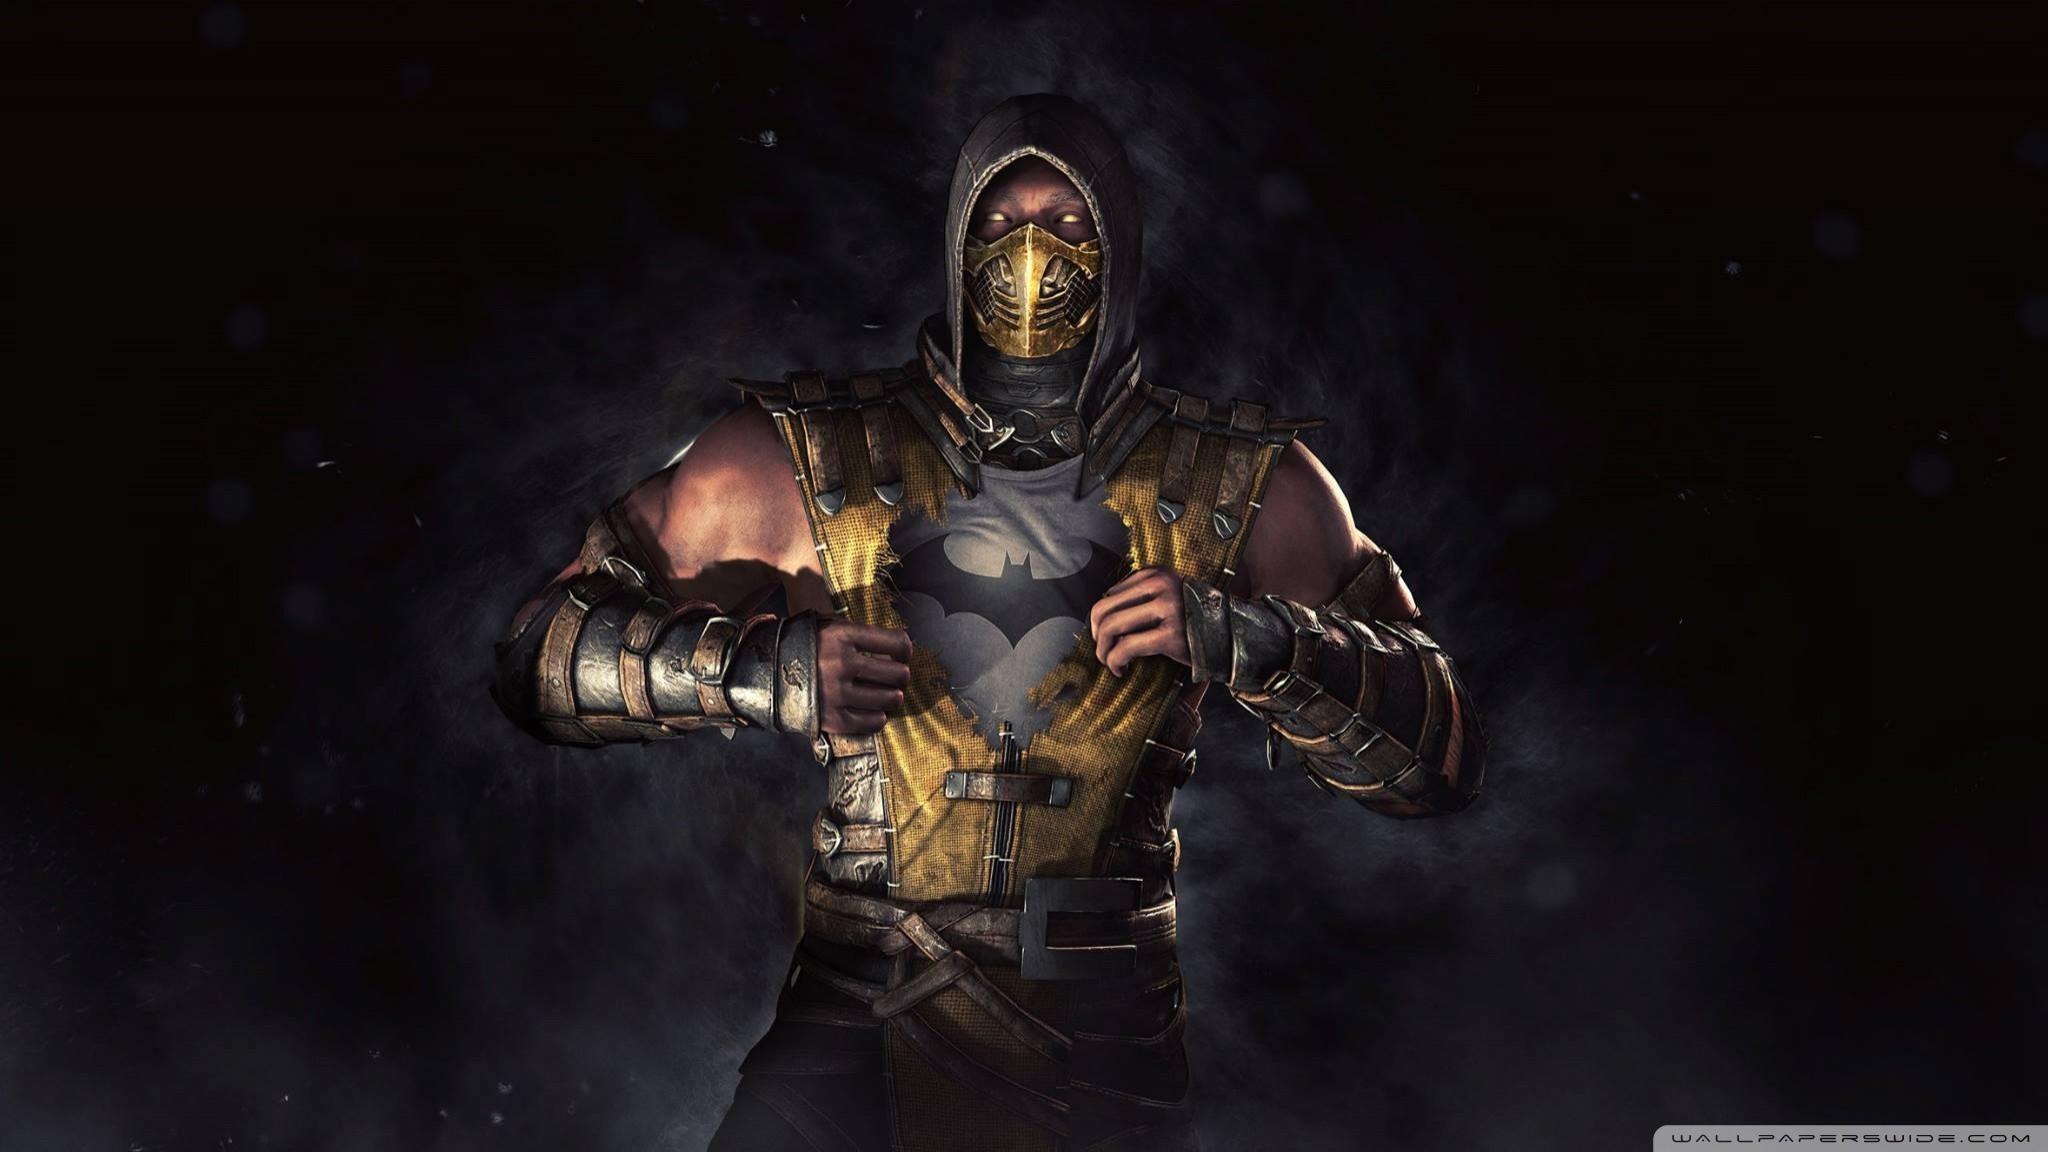 mortal kombat x scorpion wallpapers (74+ images)